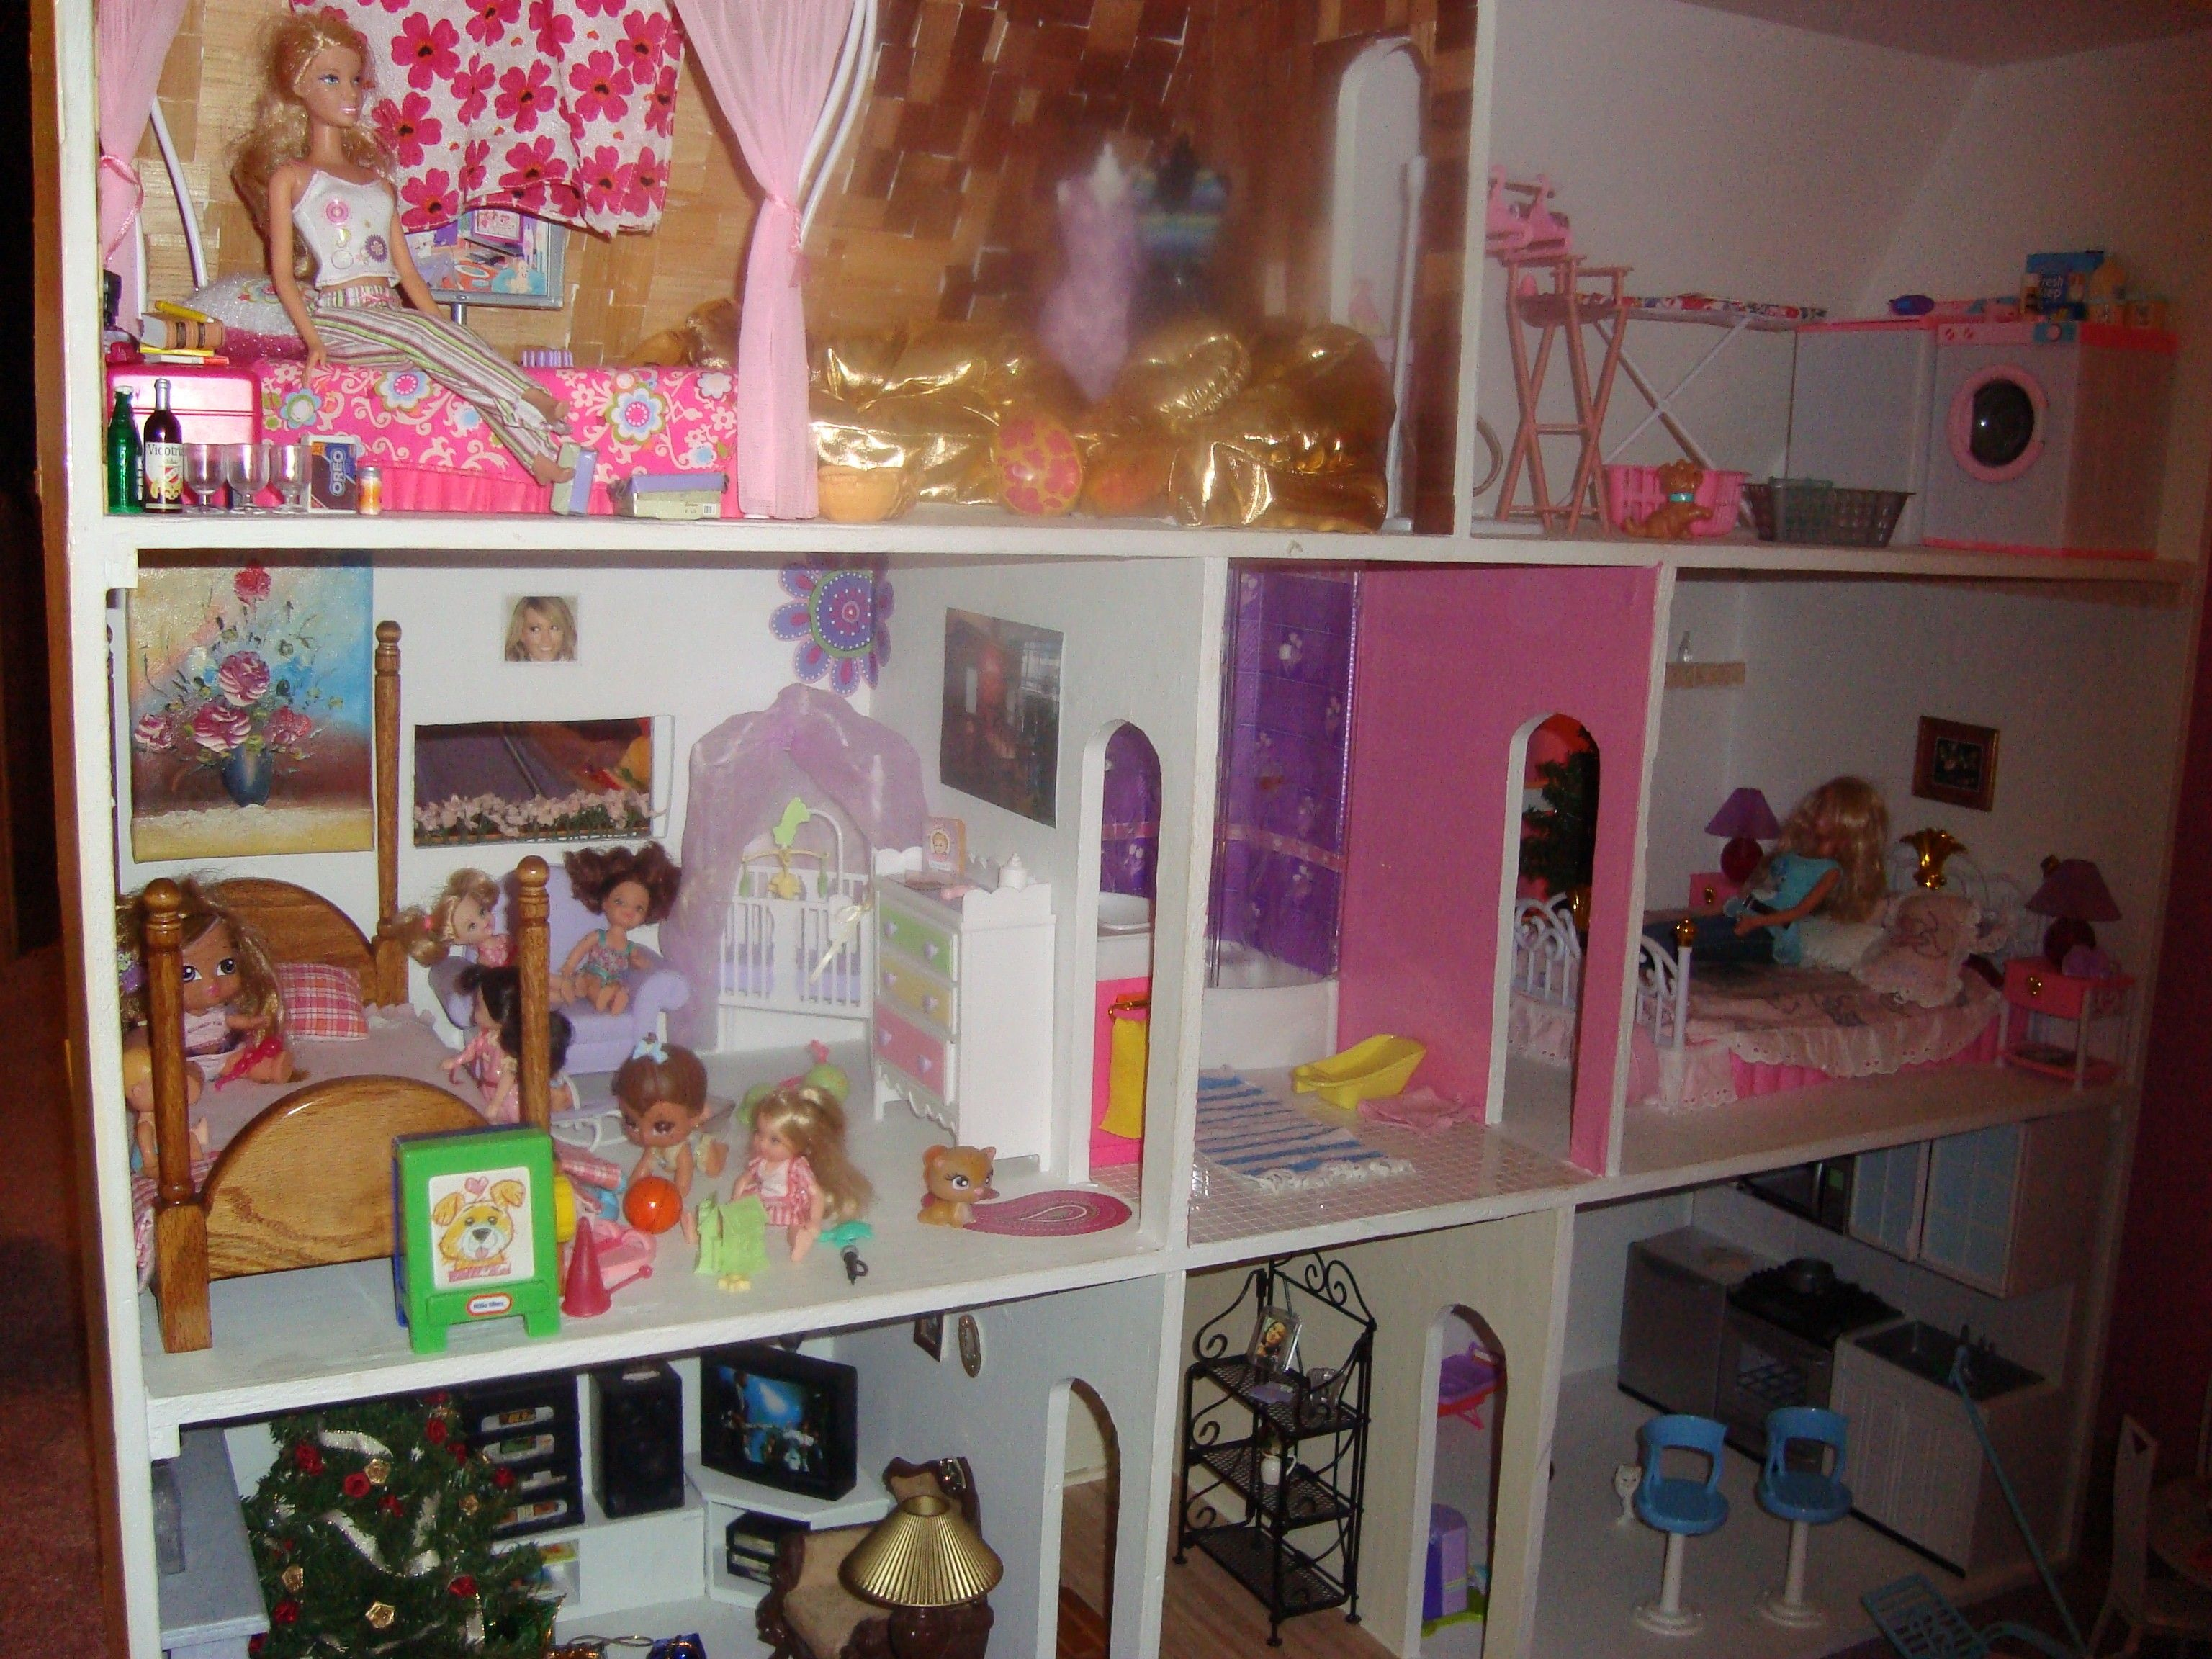 Captivating Barbie Houses   Google Search. Selbstgemachtes Barbie HausHausgemachte  PuppenMädchen ...